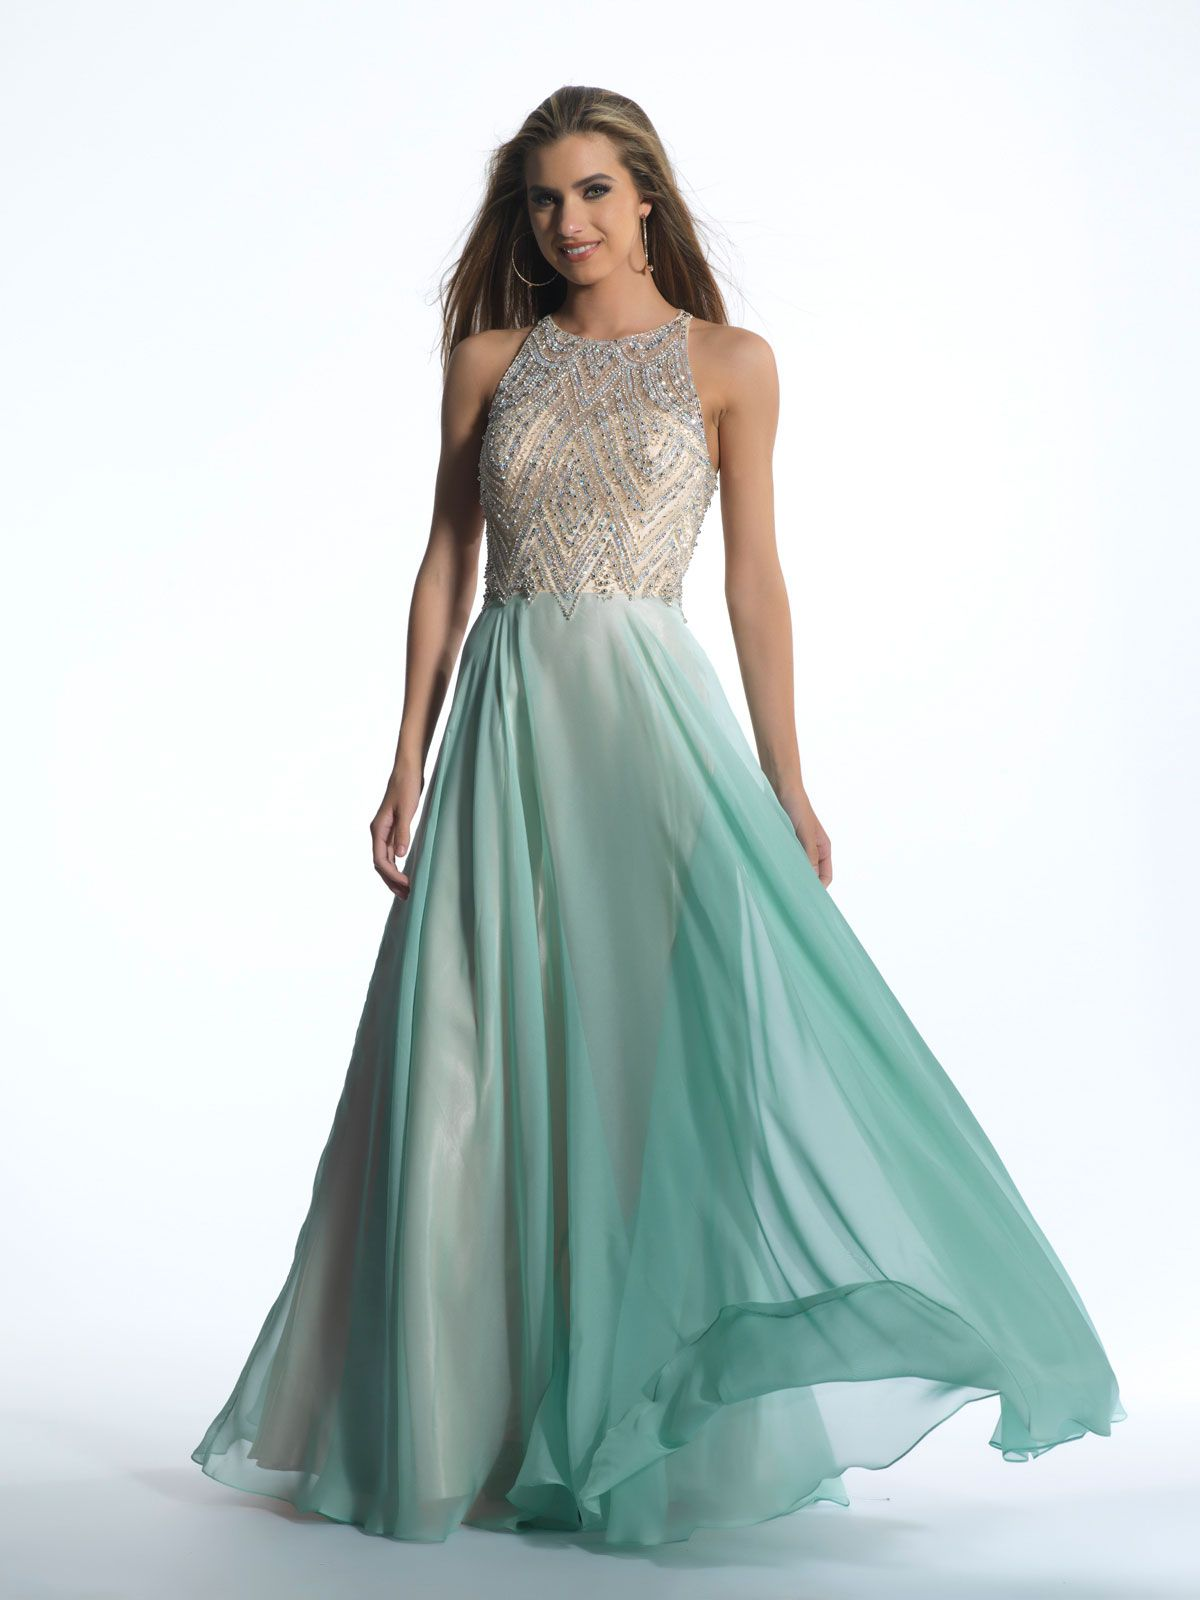 8 Ball Gowns That Will Make You Feel Like A Princess On Prom ...